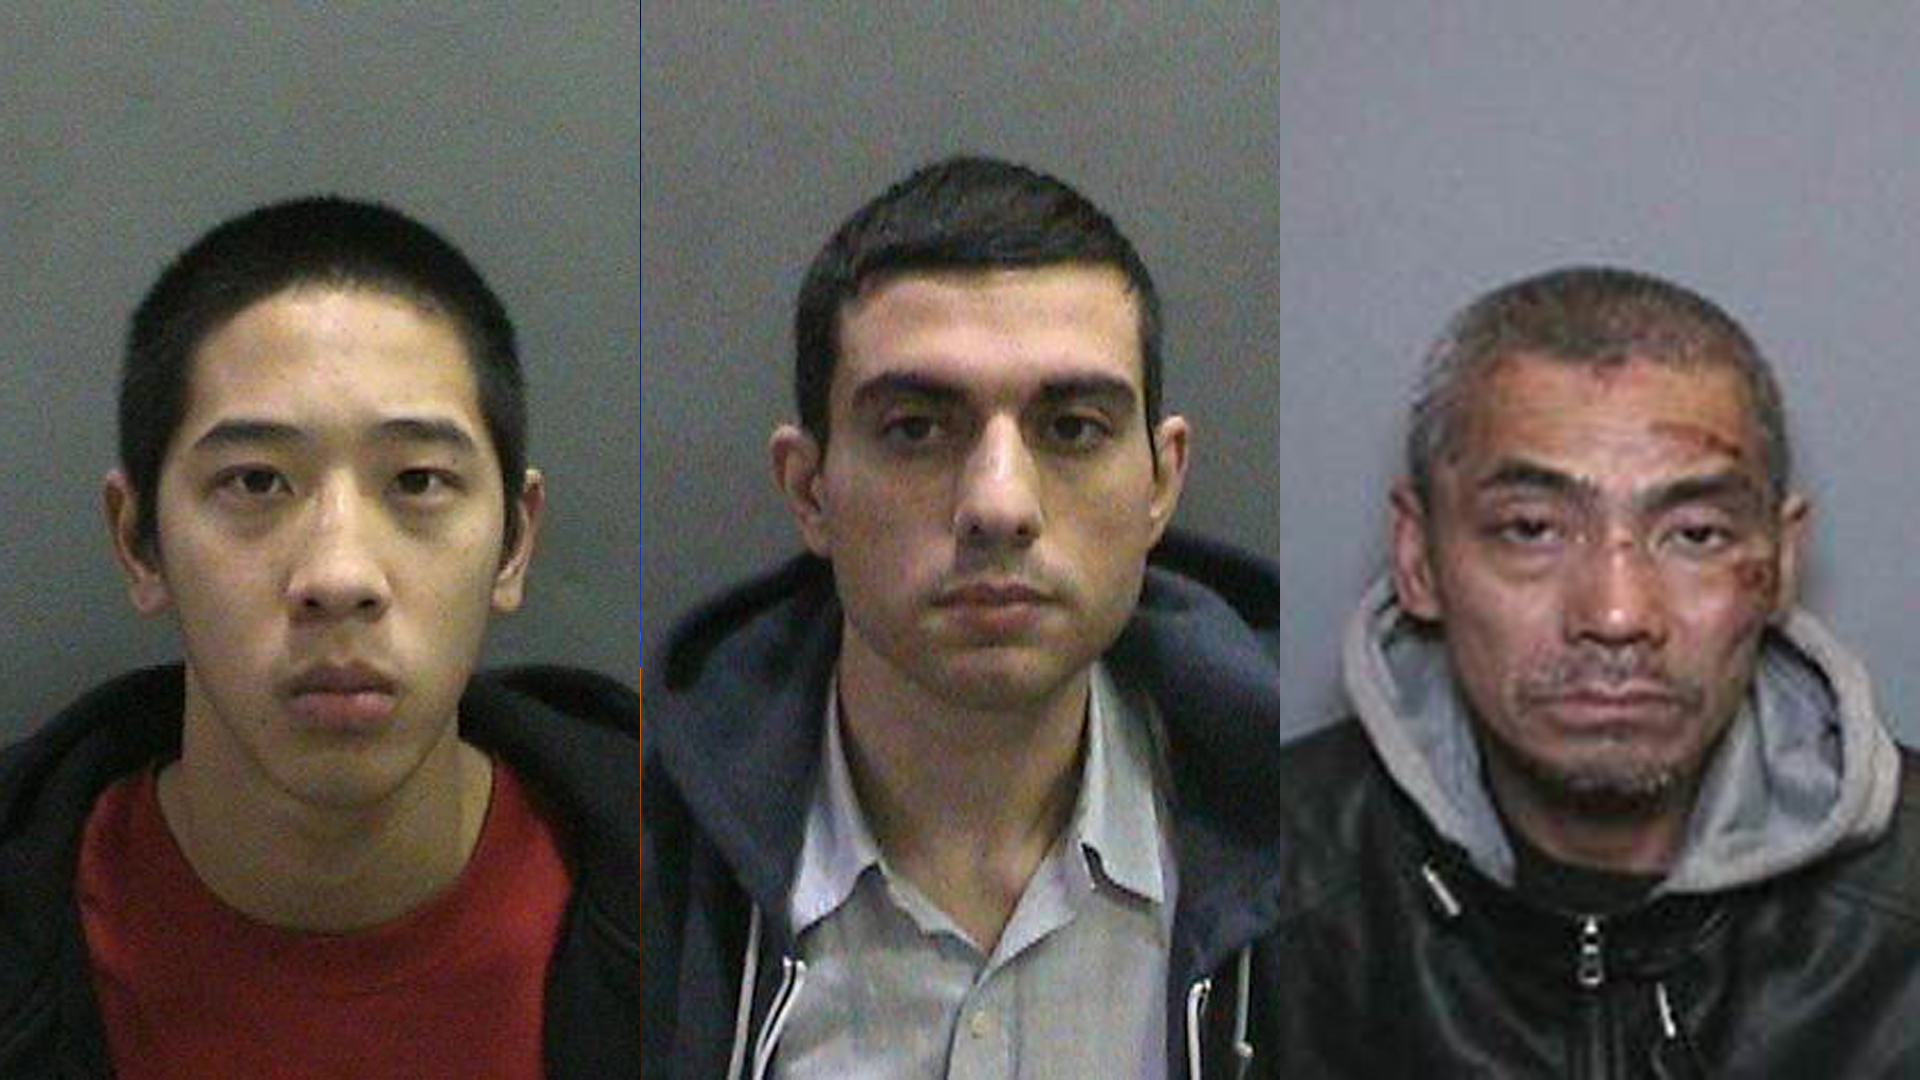 The Orange County Sheriff's Department released these photos of Jonathan Tieu, left, Hossein Nayeri, middle, and Bac Duong, right, on Jan. 23, 2016.